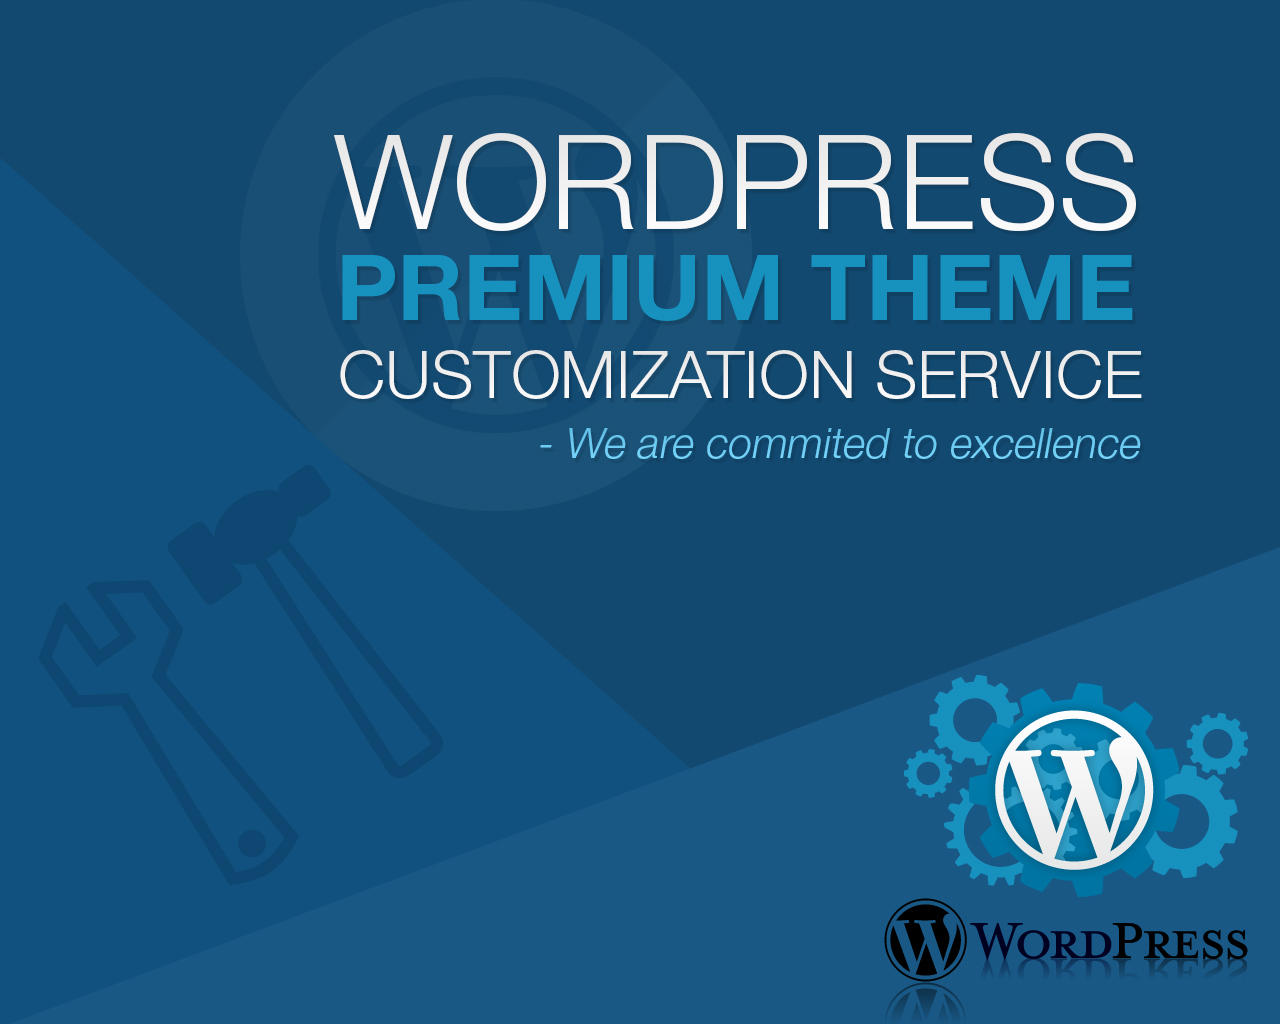 Do wordpress theme customization as per requirements with elementor page builder